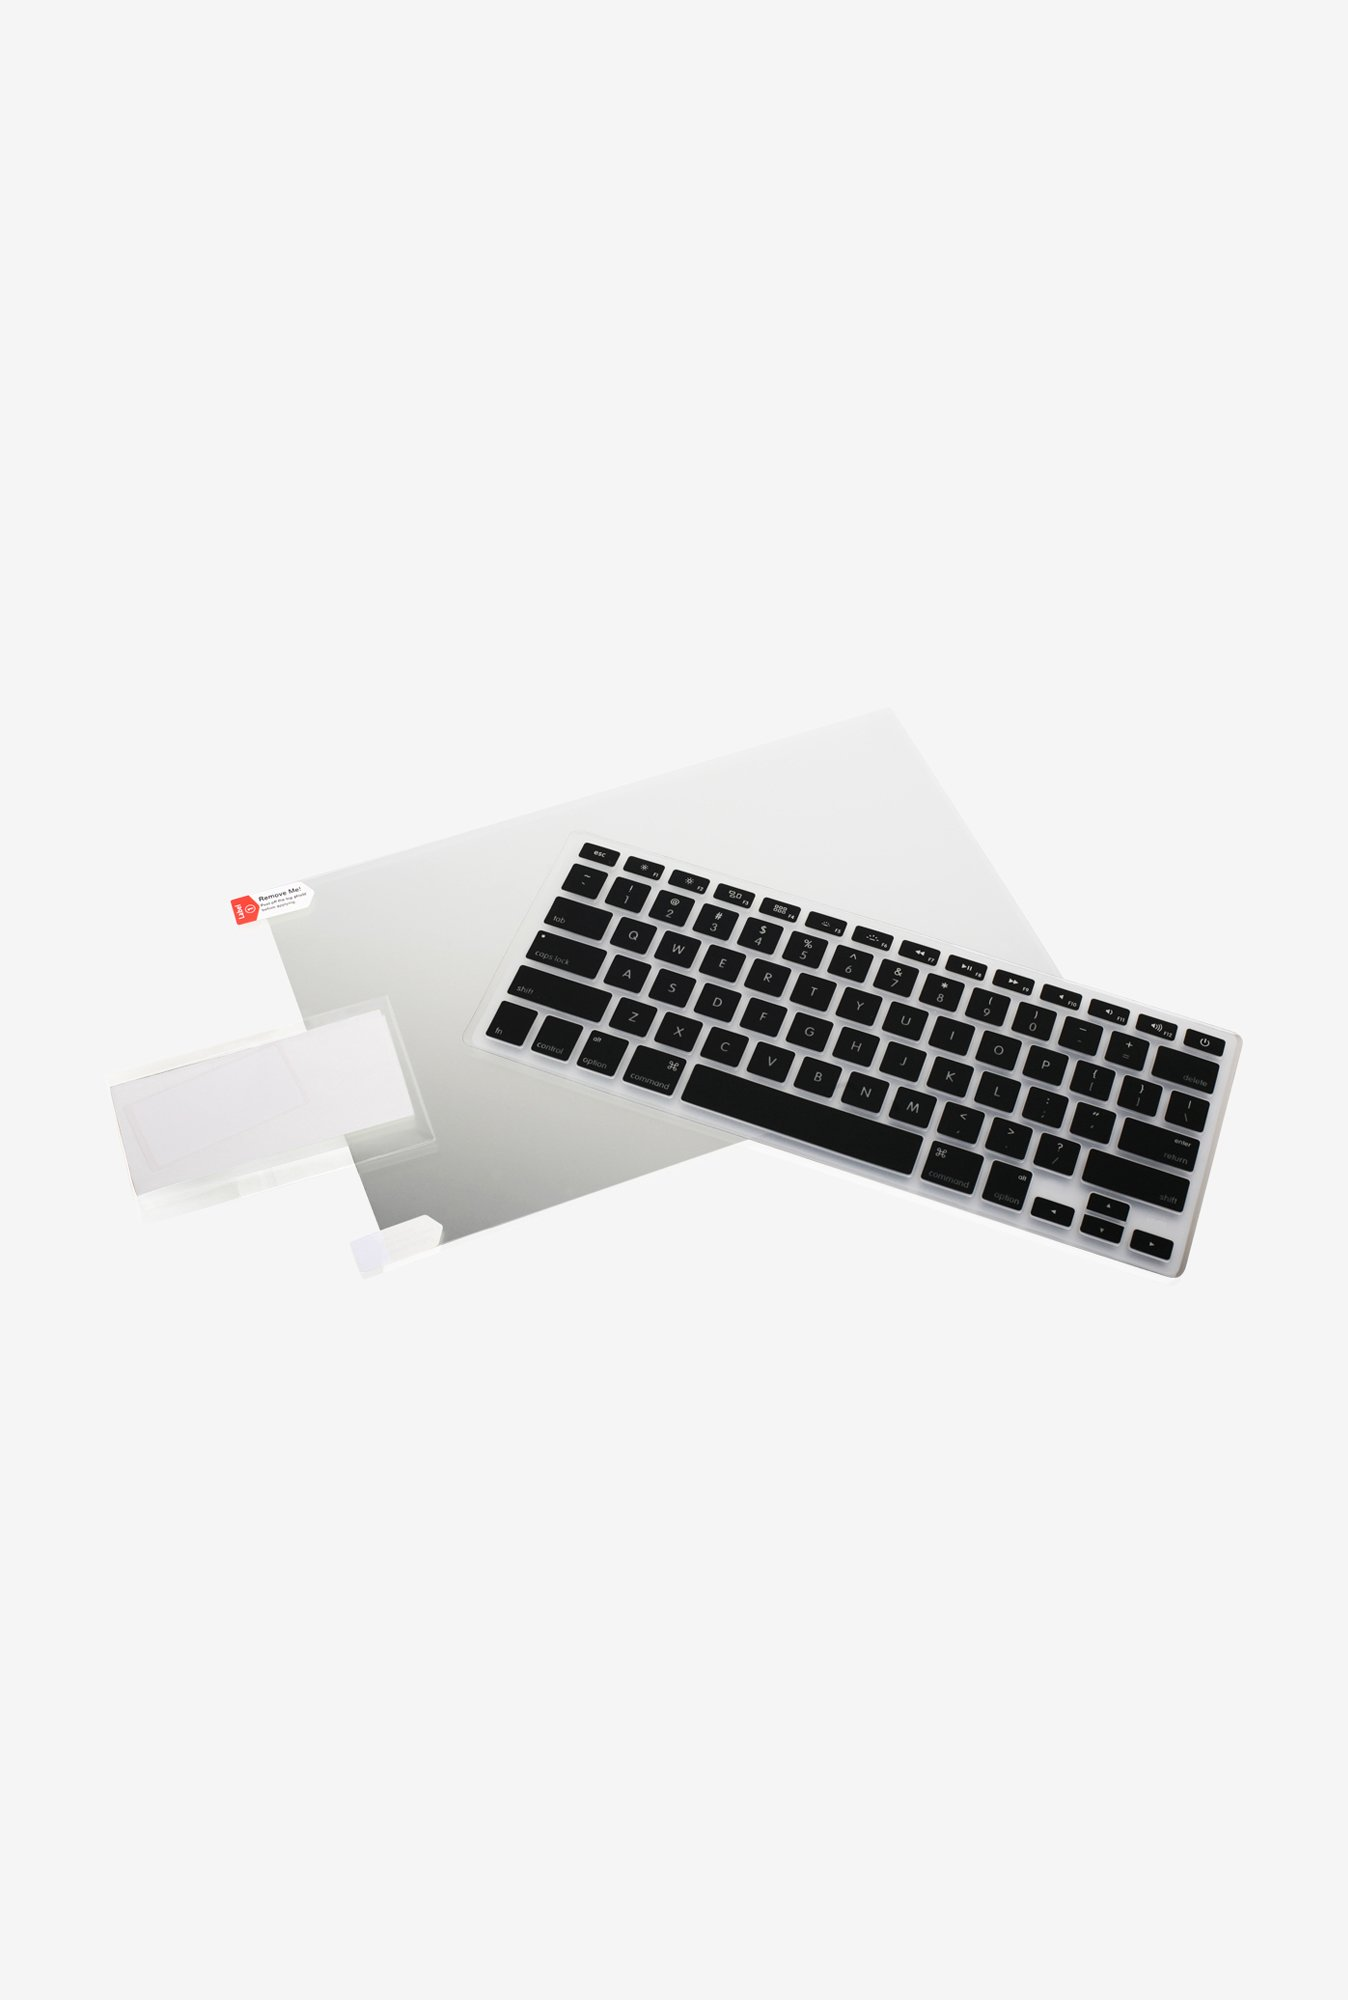 "Iogear 13"" Macbook GKSMA13 KBD Skin & Screen Protector Black"